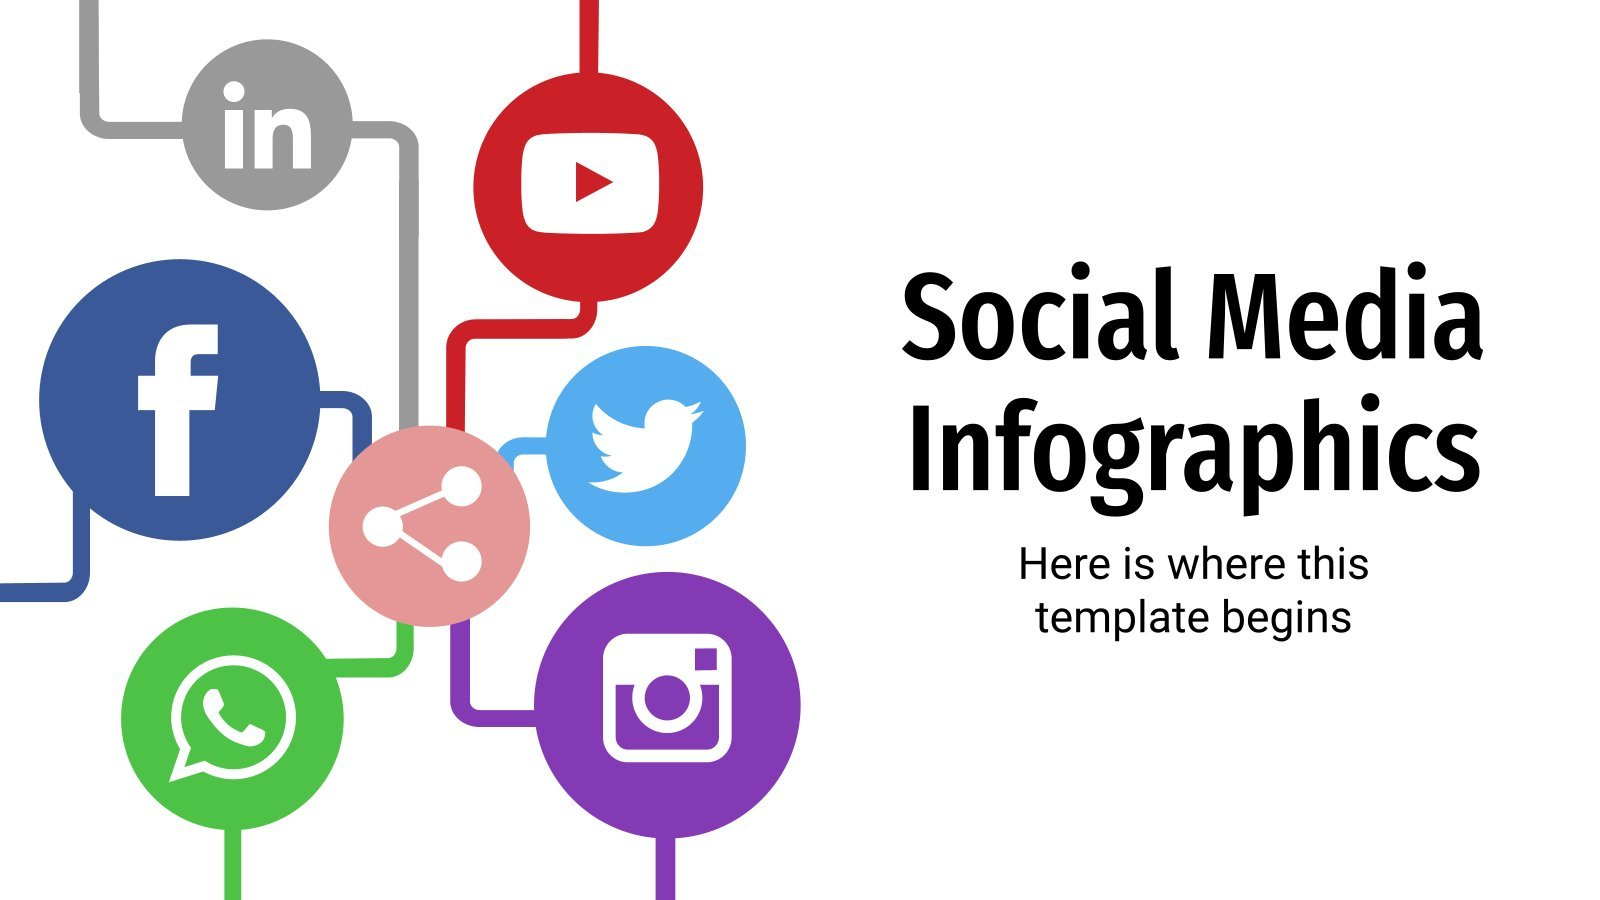 Social Media Infographics presentation template